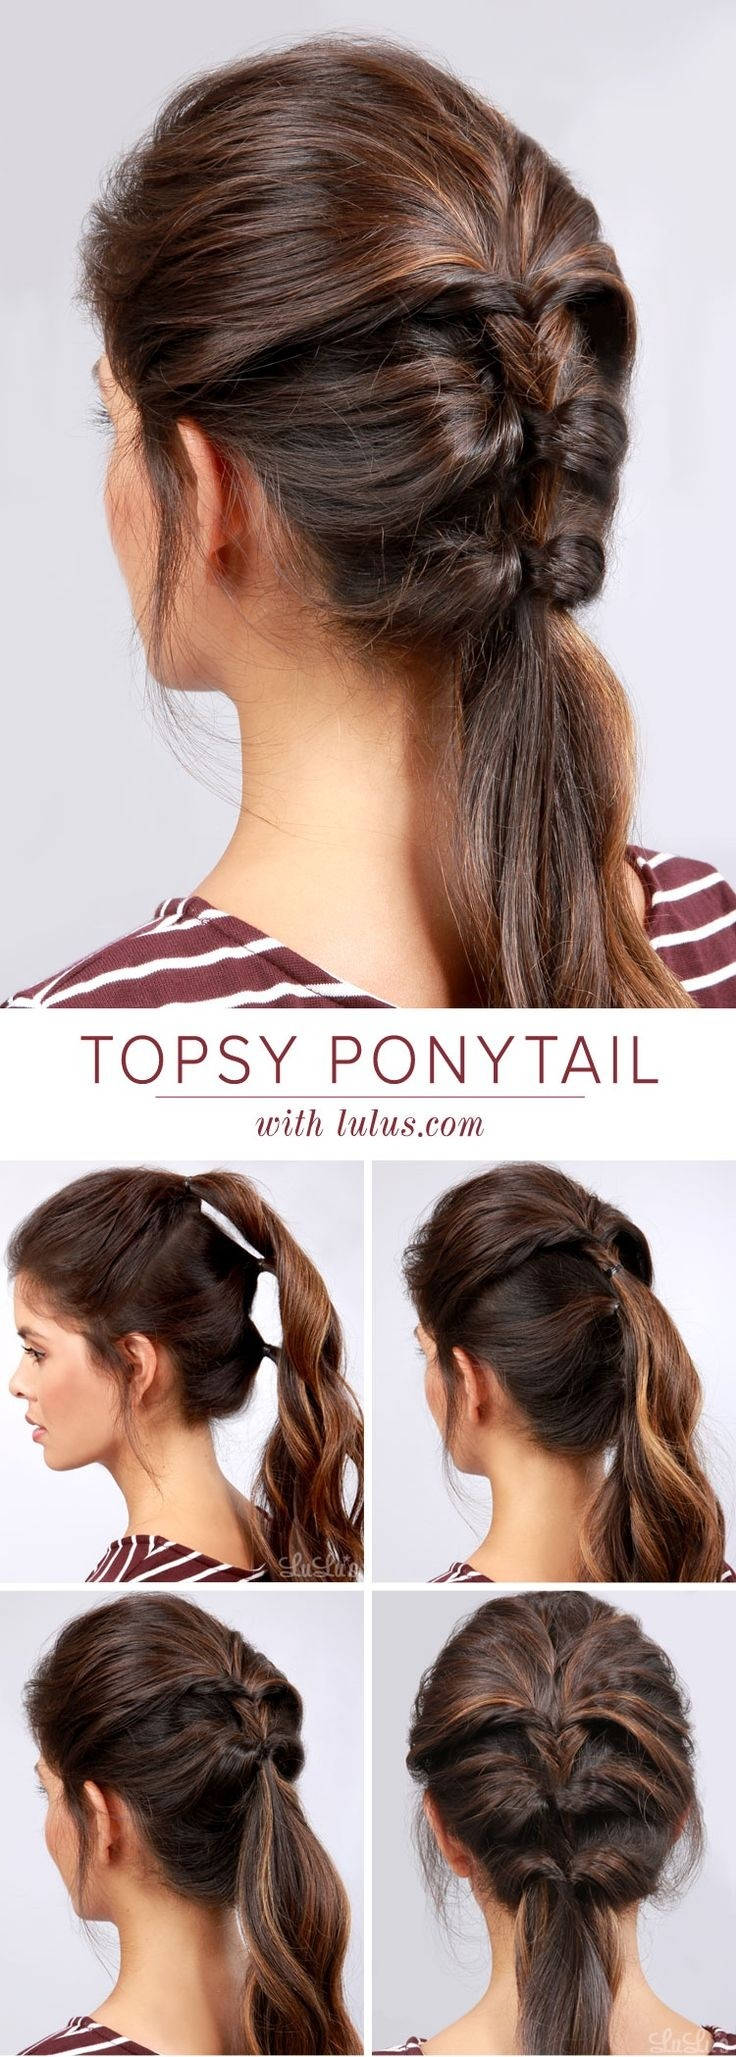 22 Great Ponytail Hairstyles For Girls Pretty Designs